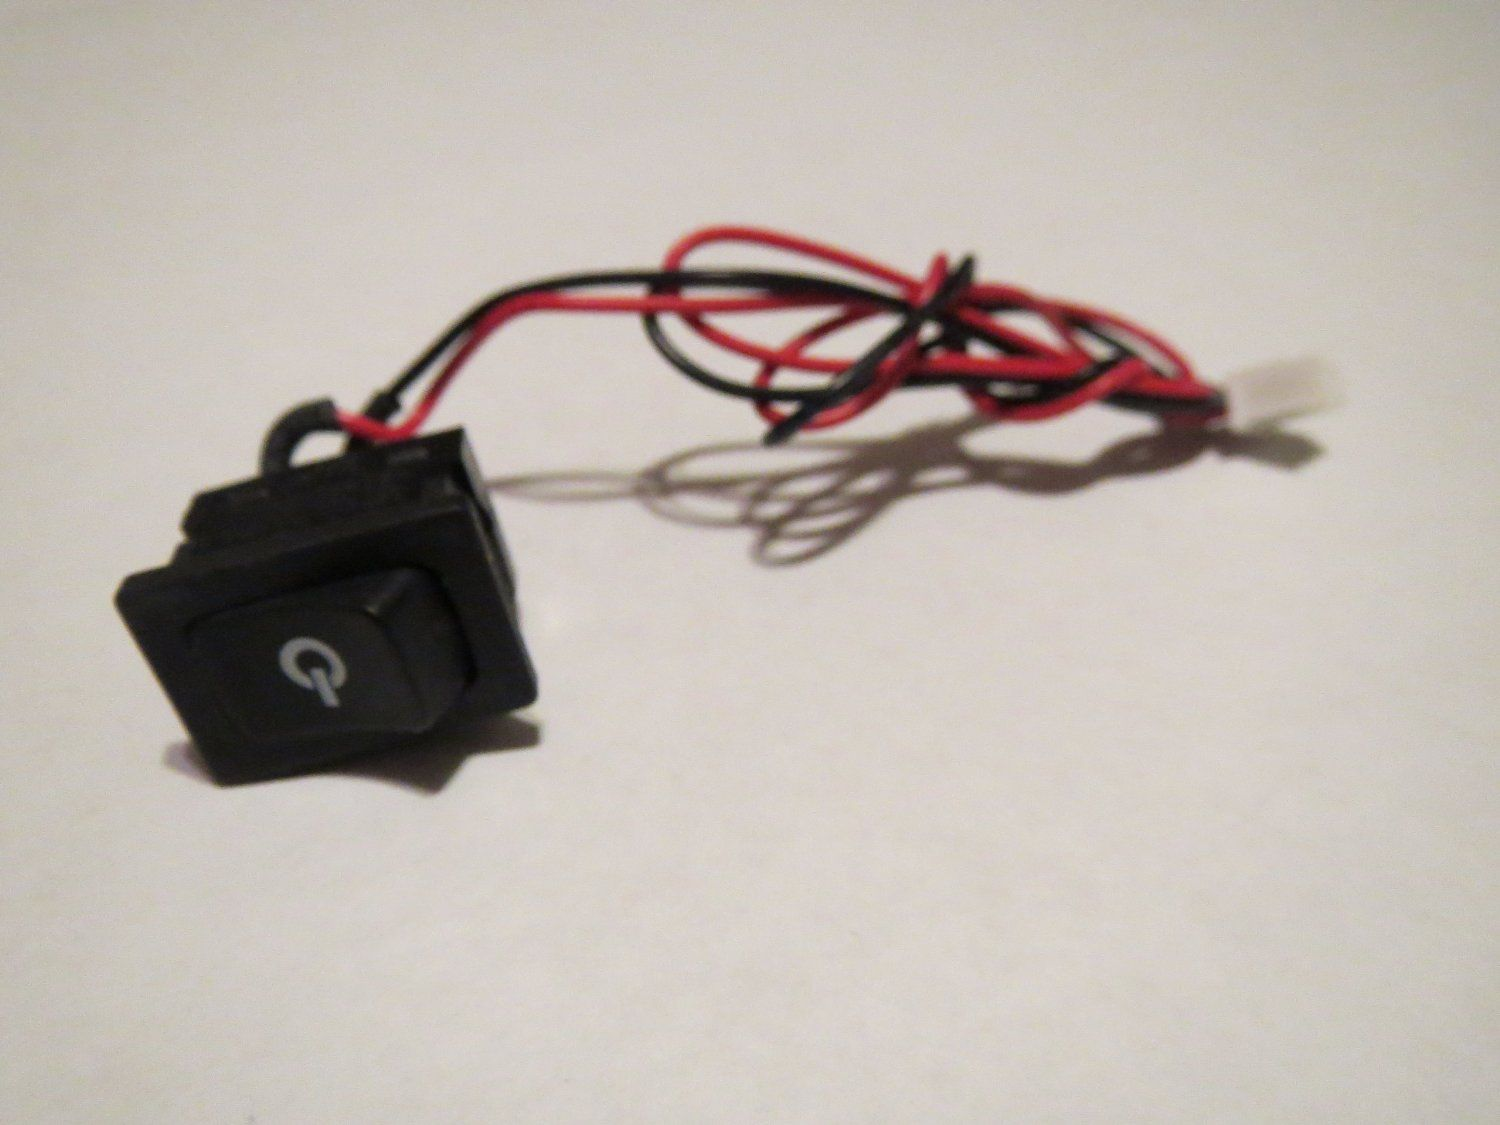 Spare Power Switch Part For The Keurig Coffee Maker